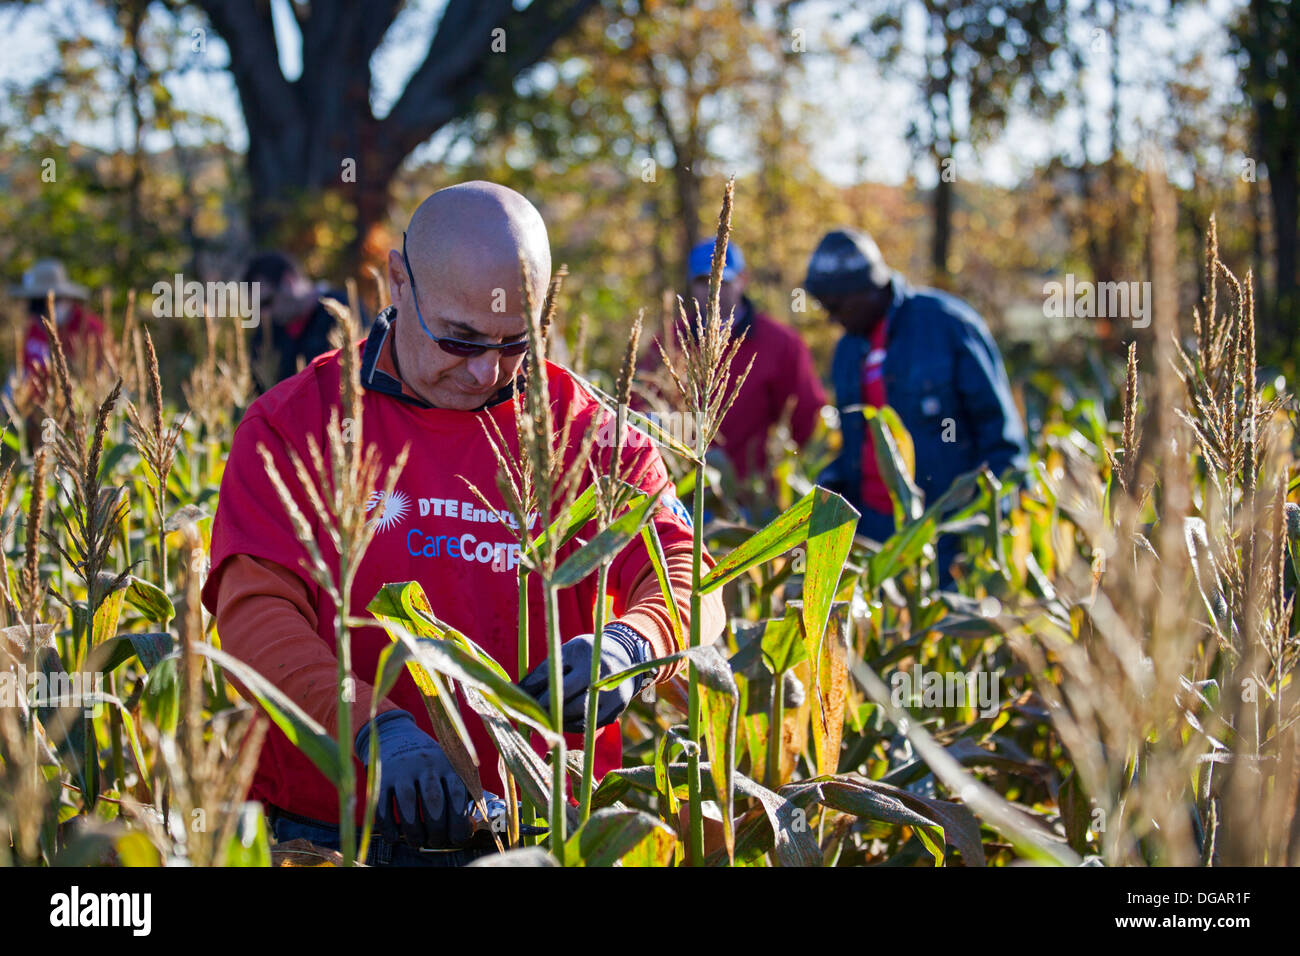 Volunteers work in corn field for charity that distributes food to the hungry. - Stock Image